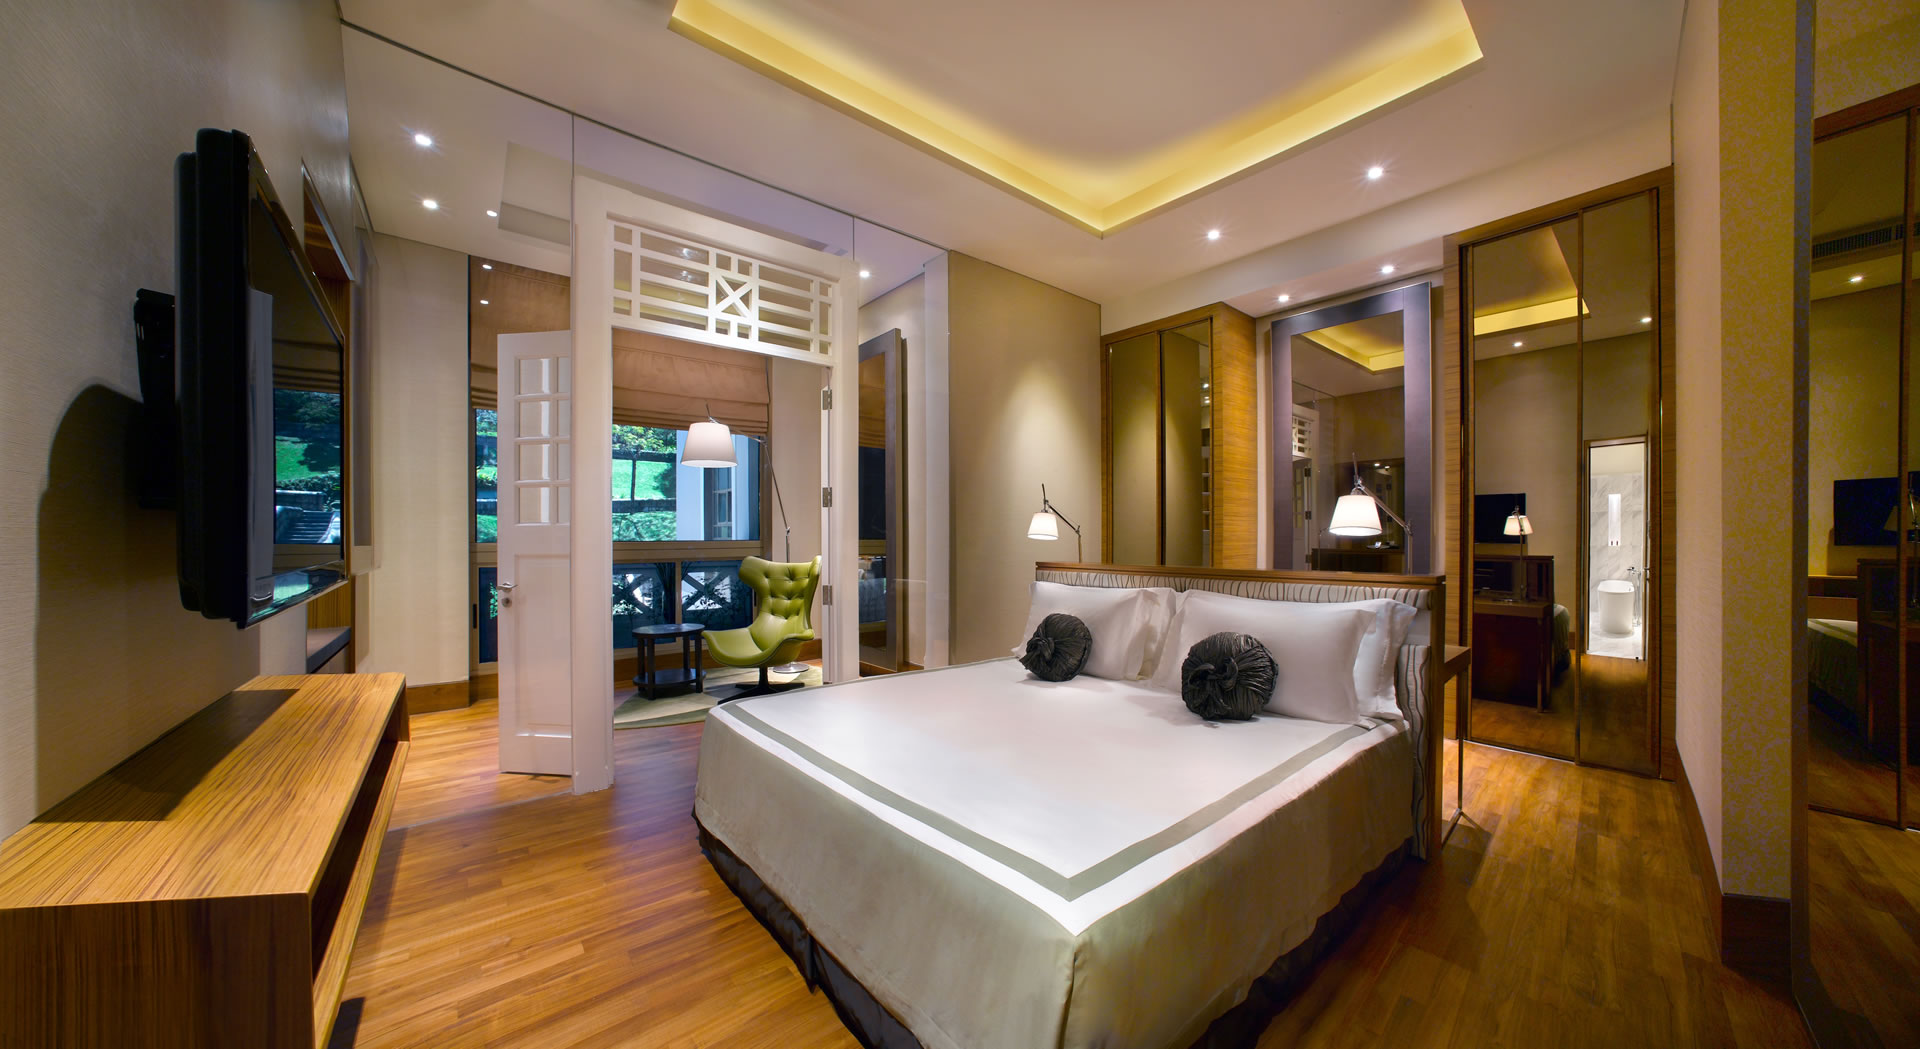 hotel fort canning an urban oasis in the city. Black Bedroom Furniture Sets. Home Design Ideas